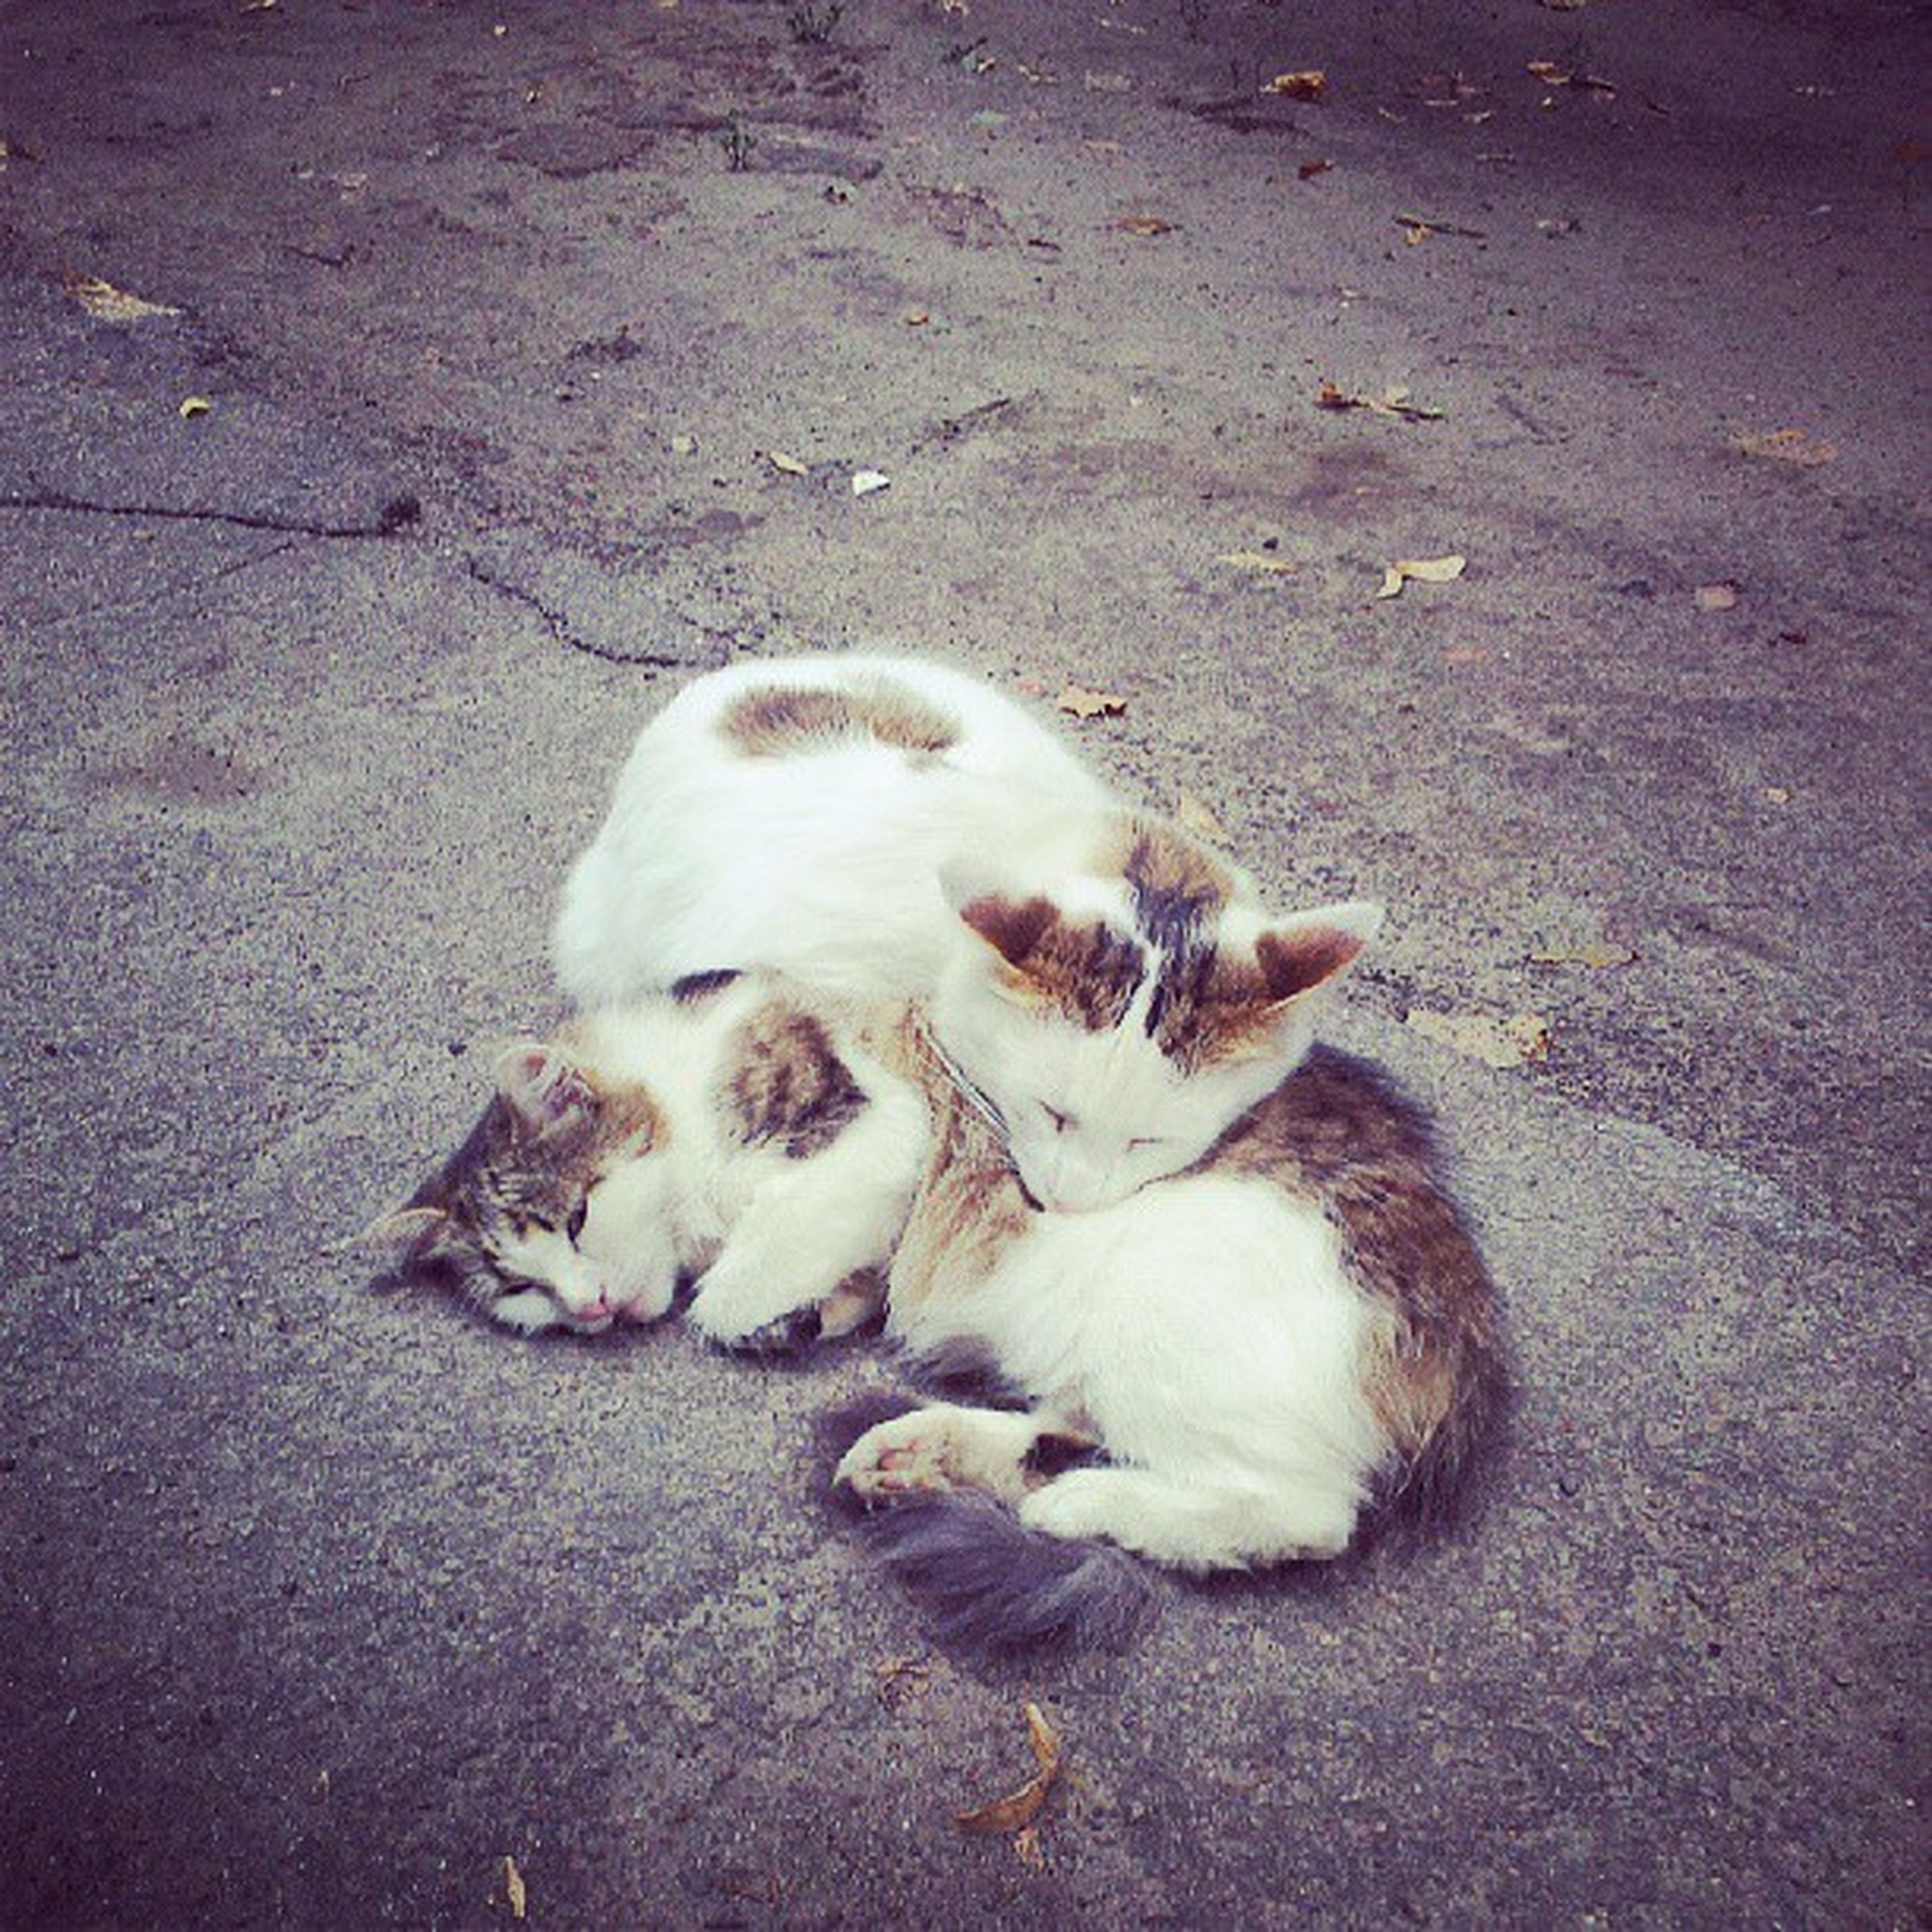 animal themes, domestic animals, pets, one animal, mammal, dog, high angle view, white color, lying down, relaxation, street, domestic cat, cat, full length, resting, sleeping, cute, outdoors, no people, day